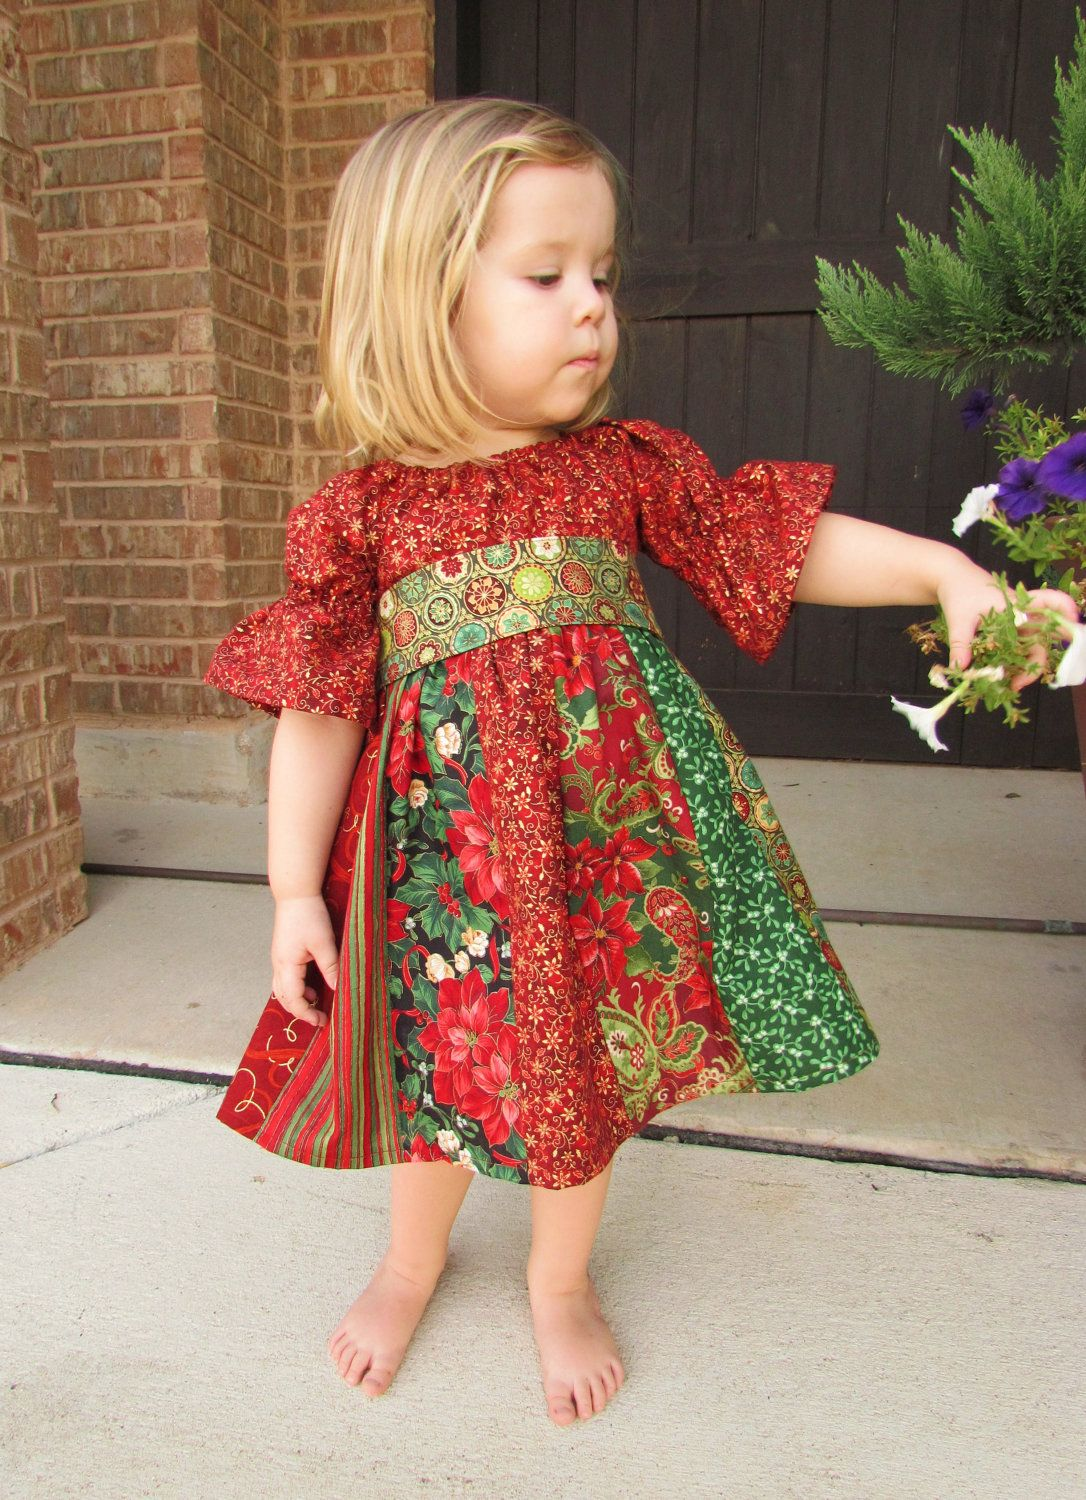 ec4198436 Child's stripwork peasant dress for Christmas. Girls Christmas dress in  sizes 12 month, 2t, 3t, 4t. $39.00, via Etsy.